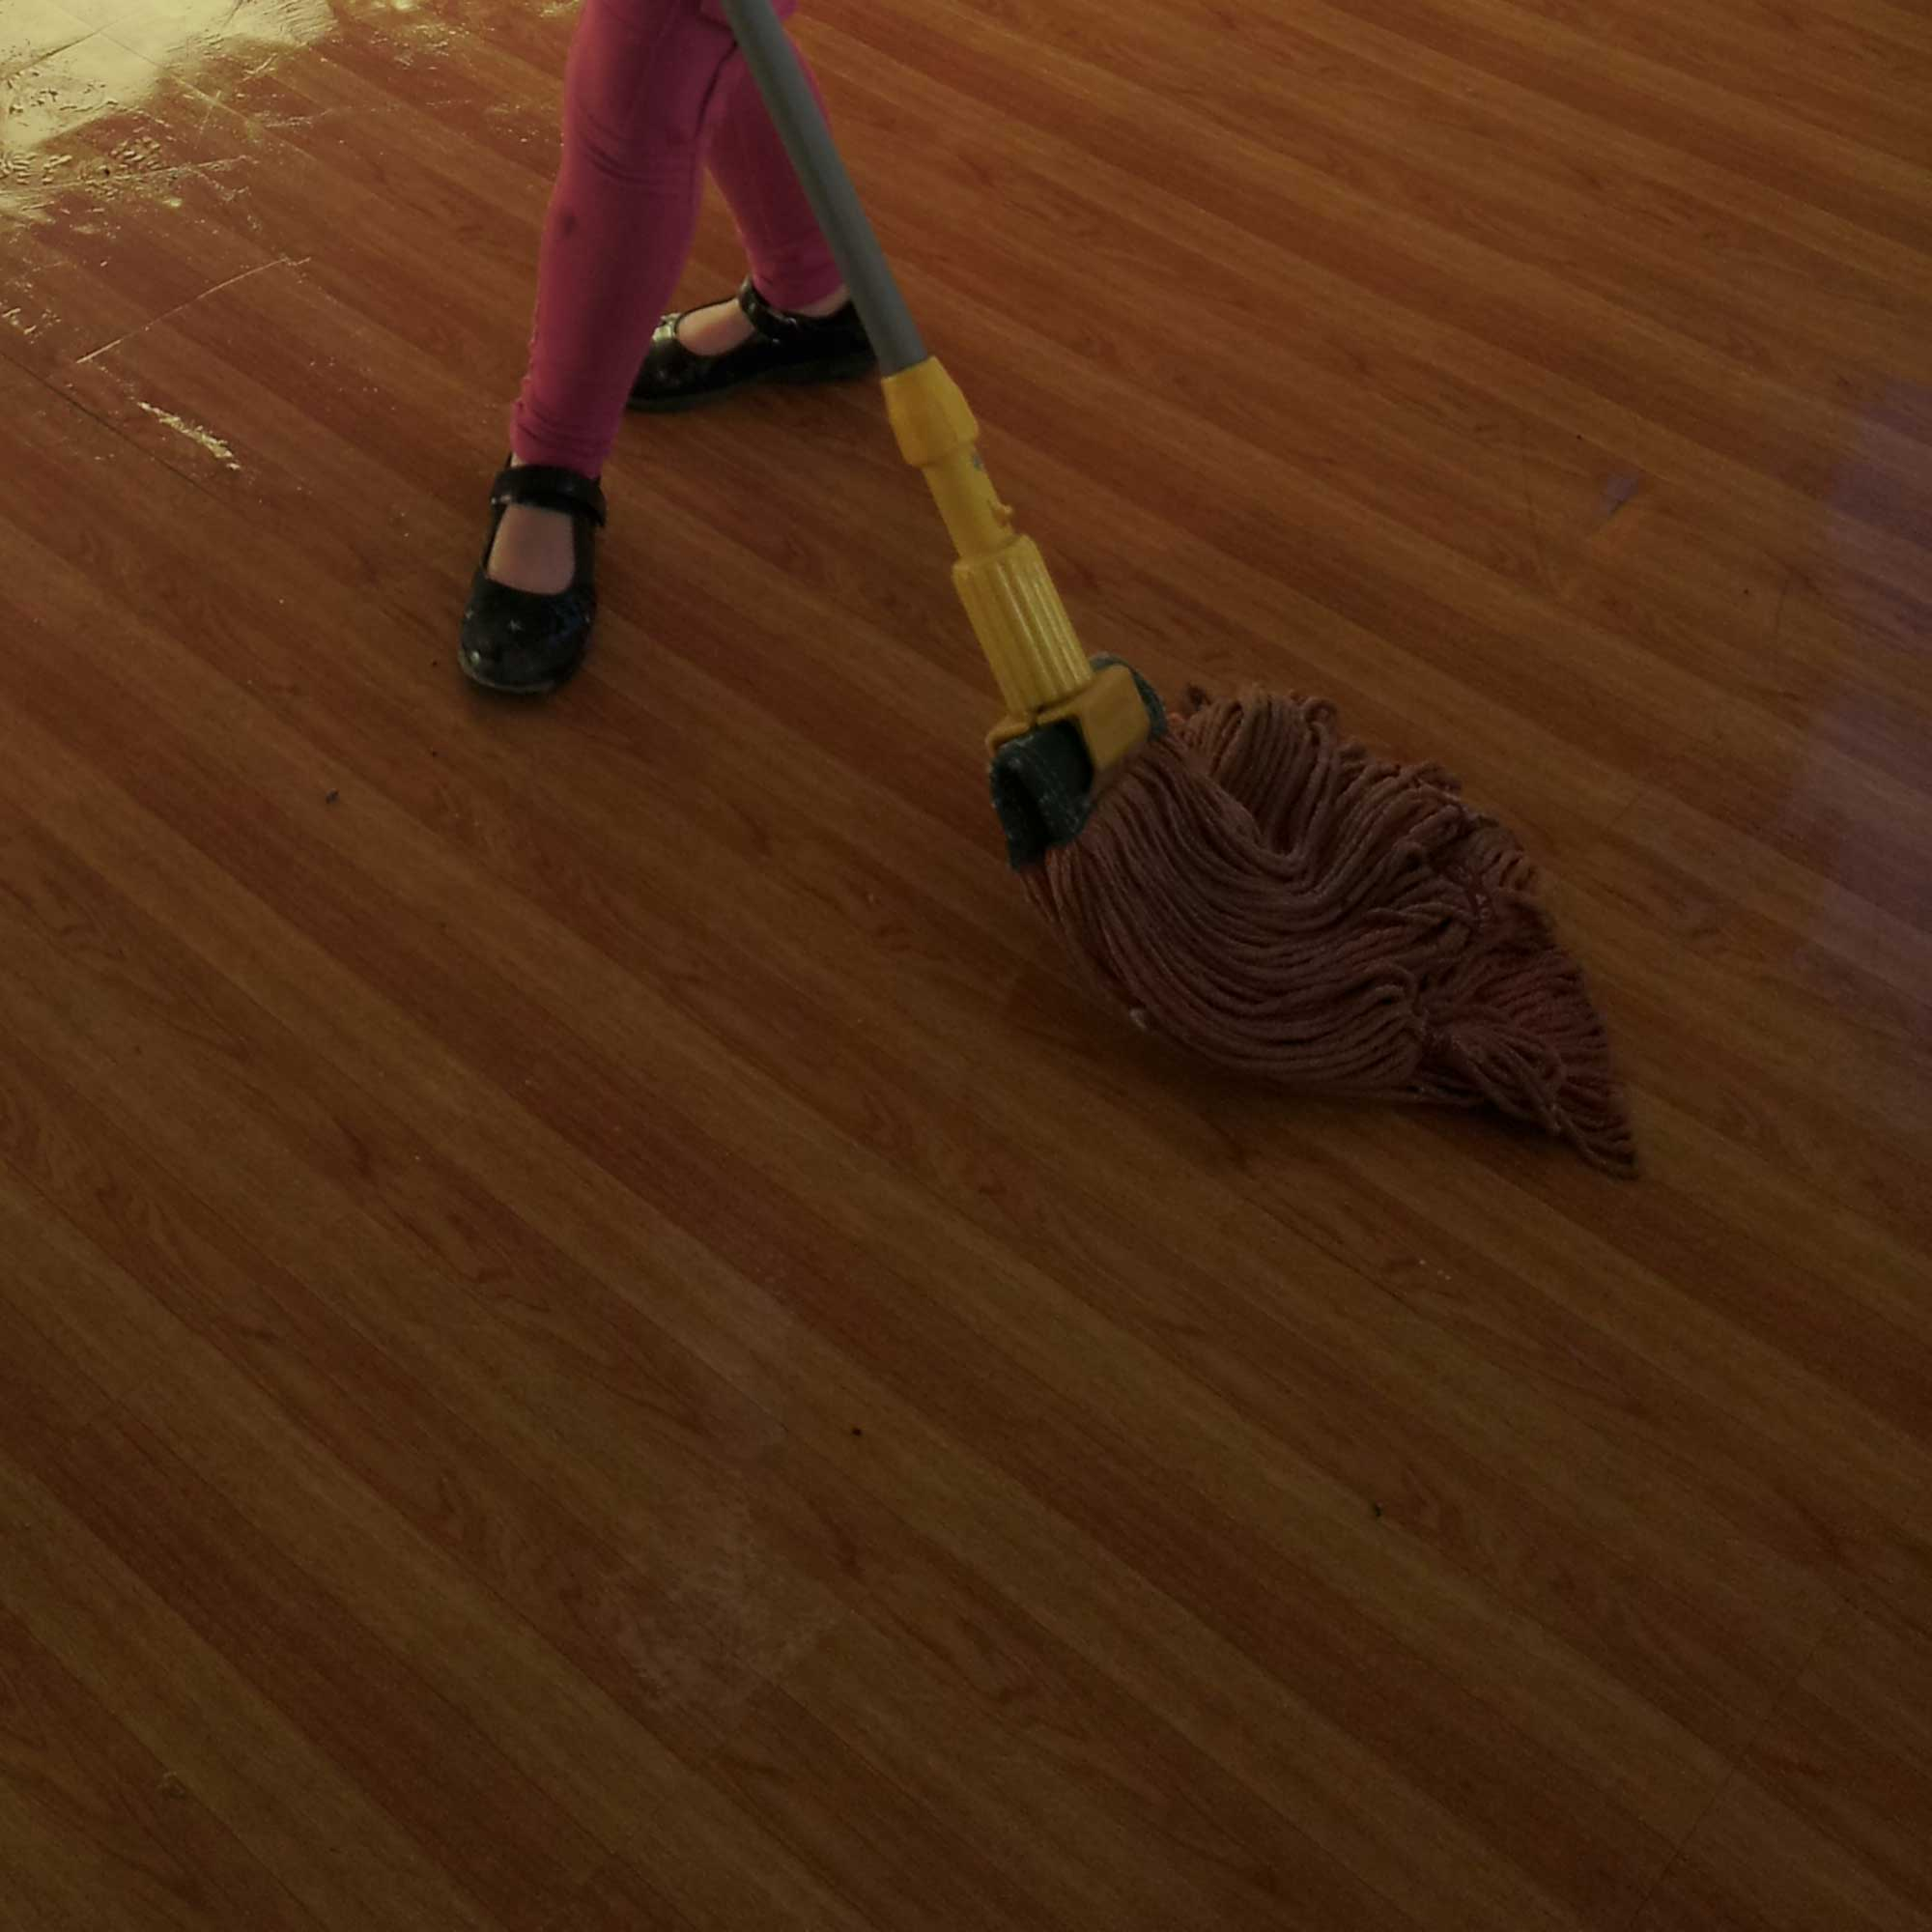 Tookii things to do with kids mopping the floor one of the activities for kids